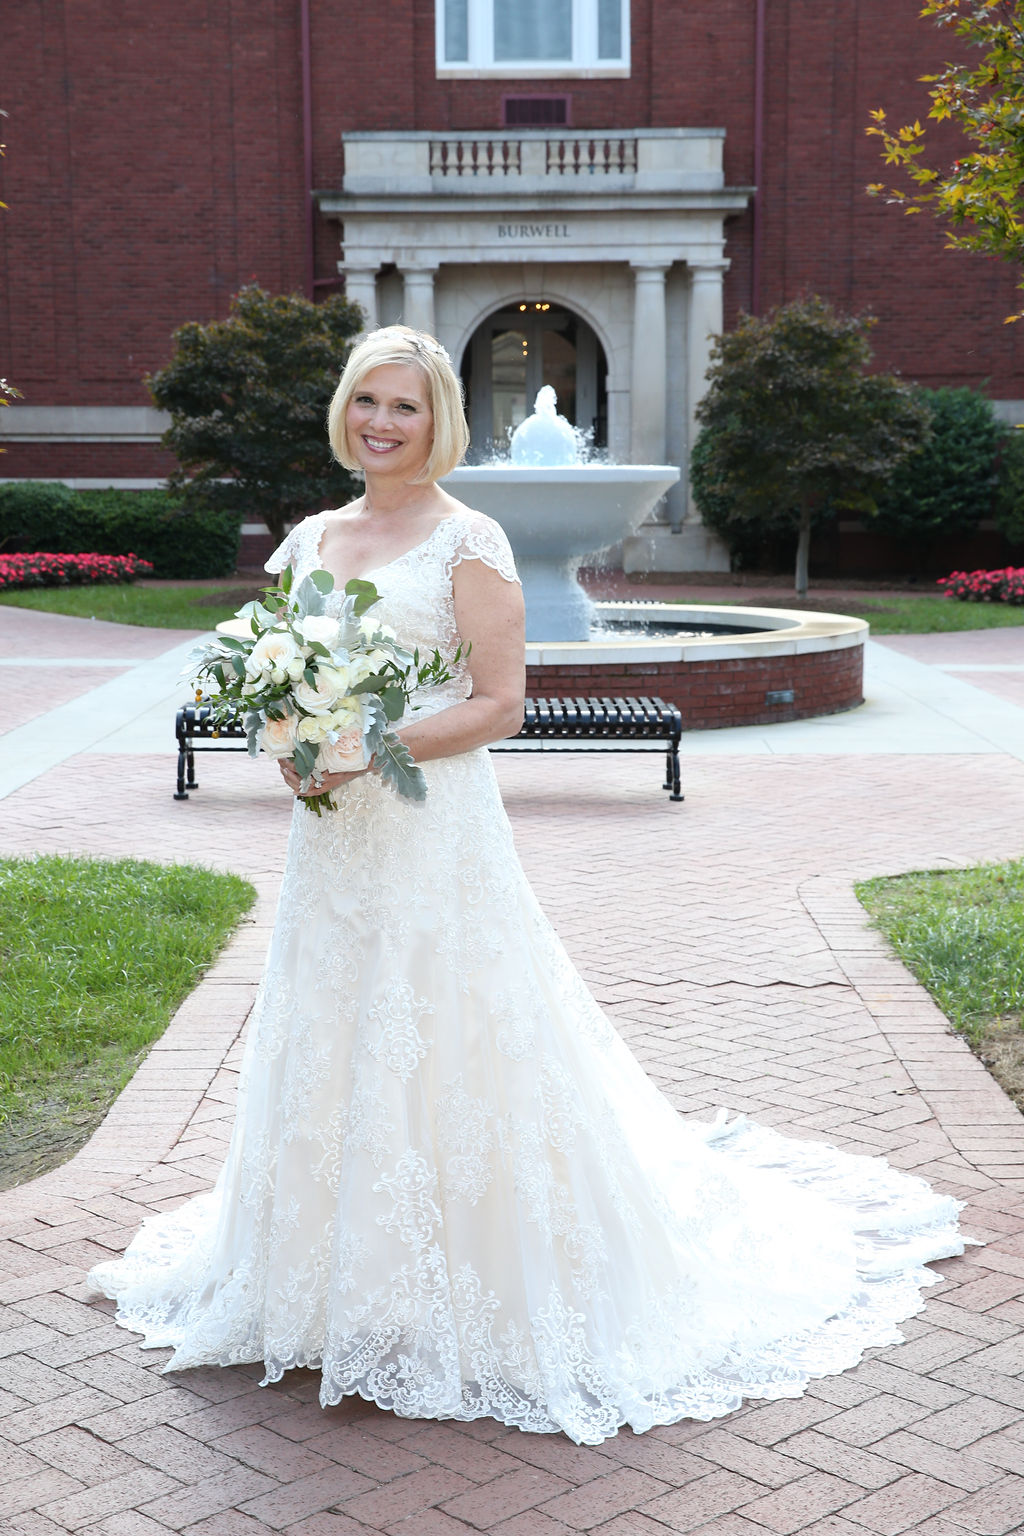 Bride poses on the grounds of Belk Chapel holding her bridal bouquet designed by Party Blooms